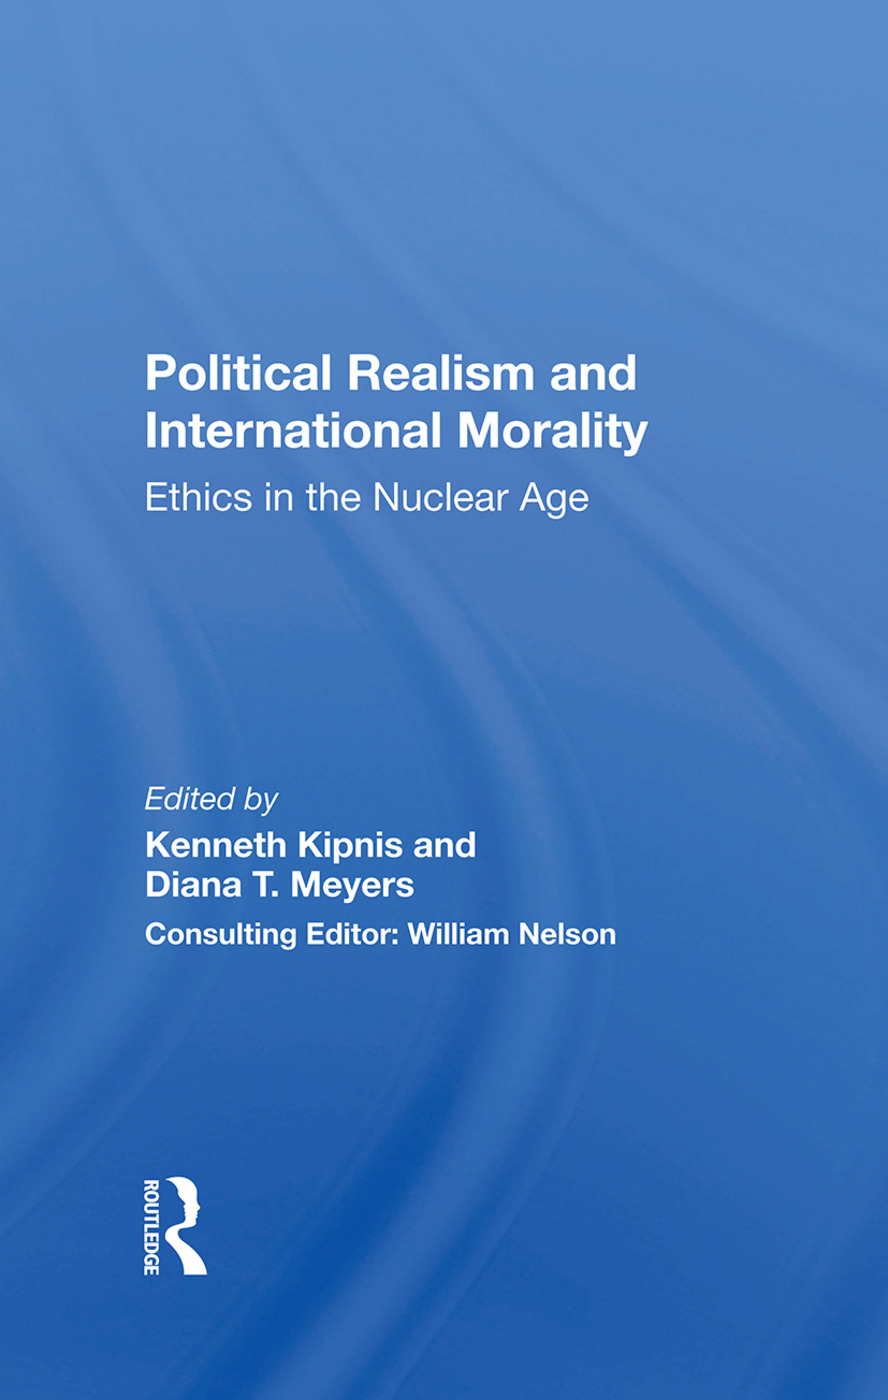 Political Realism and International Morality